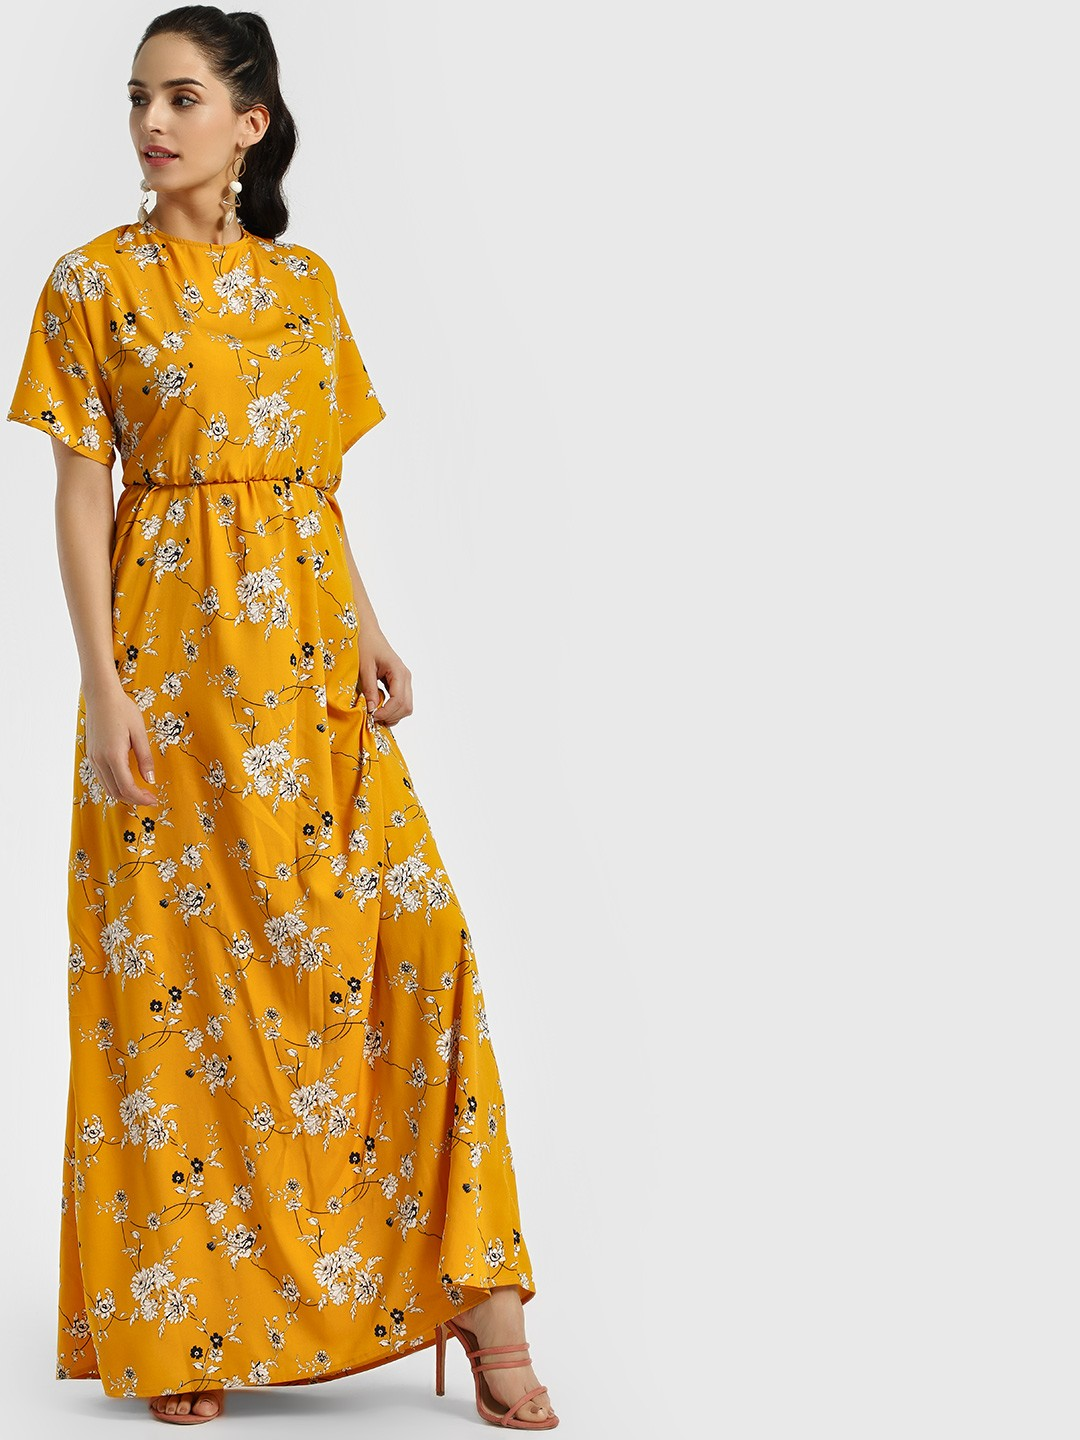 The Gud Look Multi Floral Print Backless Maxi Dress 1